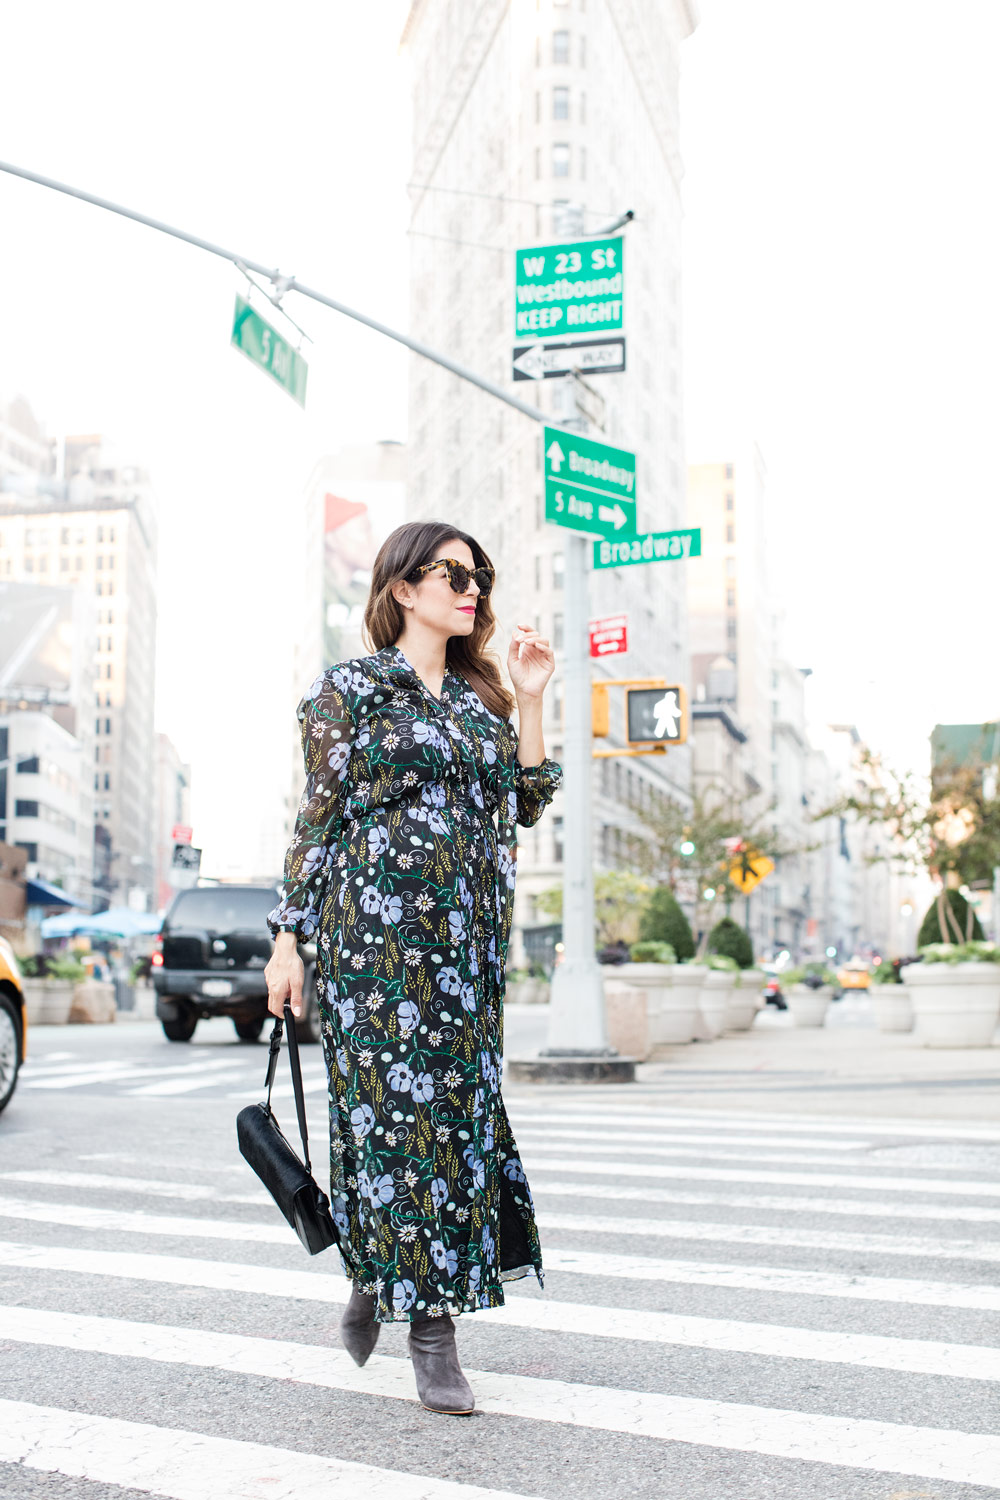 floral-dress-banana-republic-worth-new-york-fall-style-corporate-catwalk-joie-suede-boots-new-york-city-fashion-blogger-5